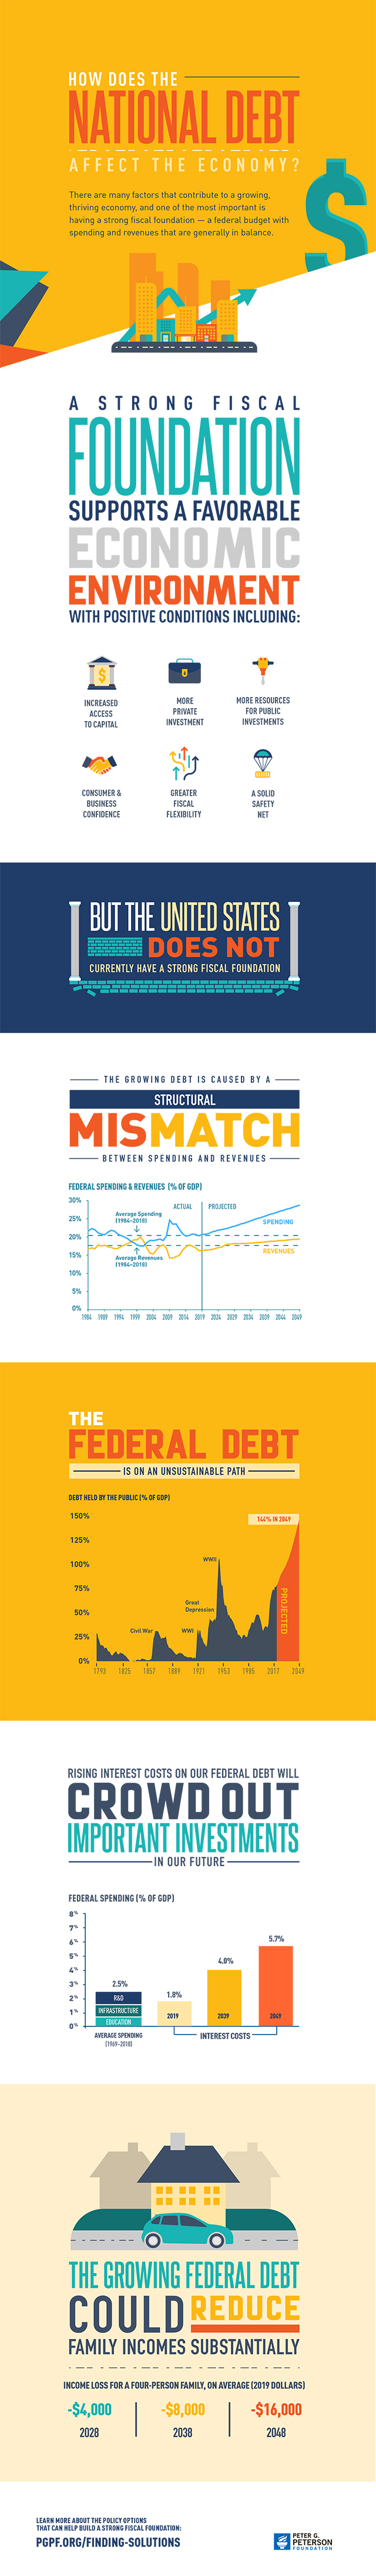 How Does the National Debt Affect the Economy?